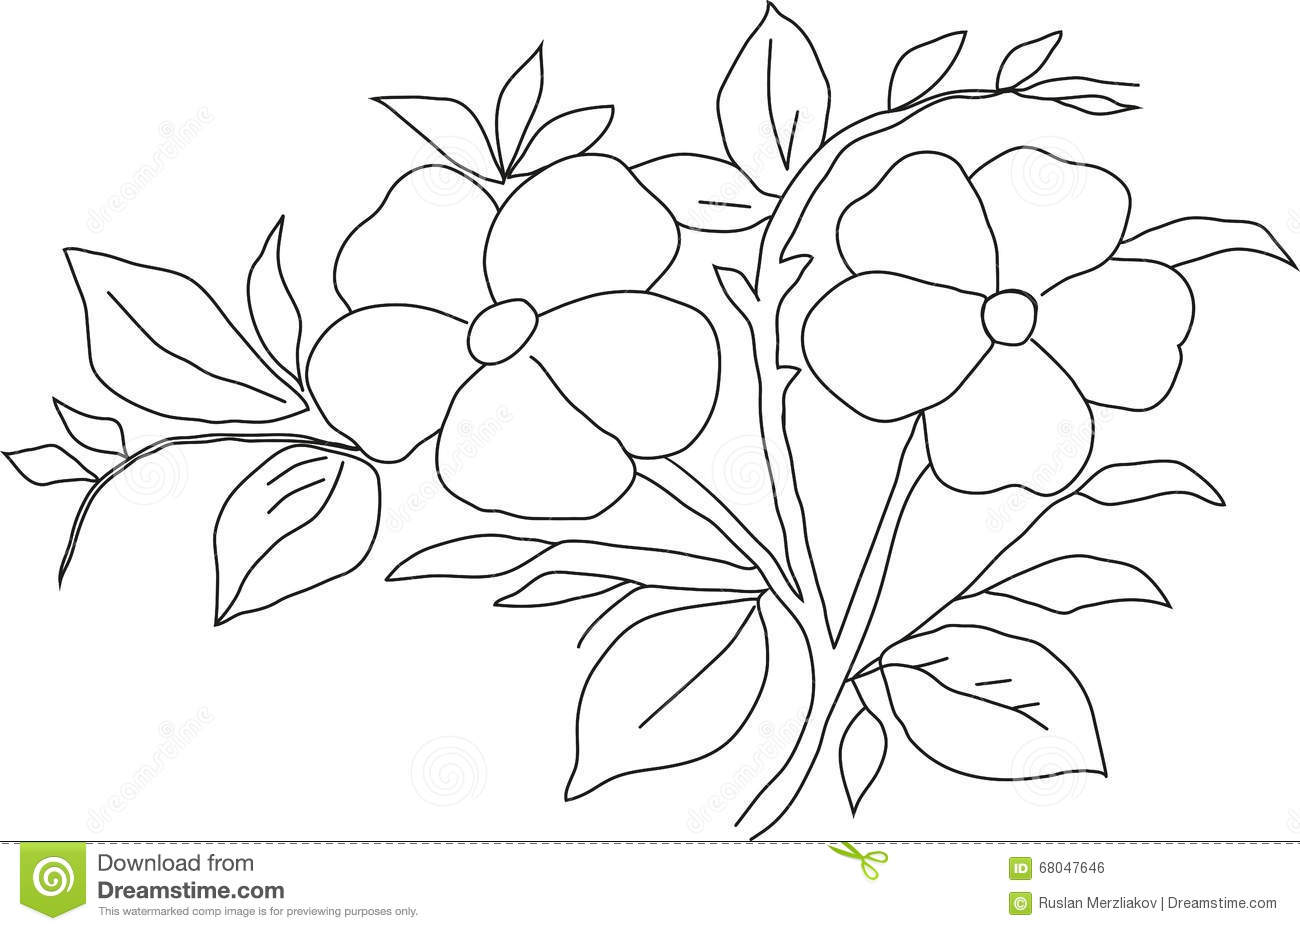 Pencil drawing violet stock illustration. Illustration of